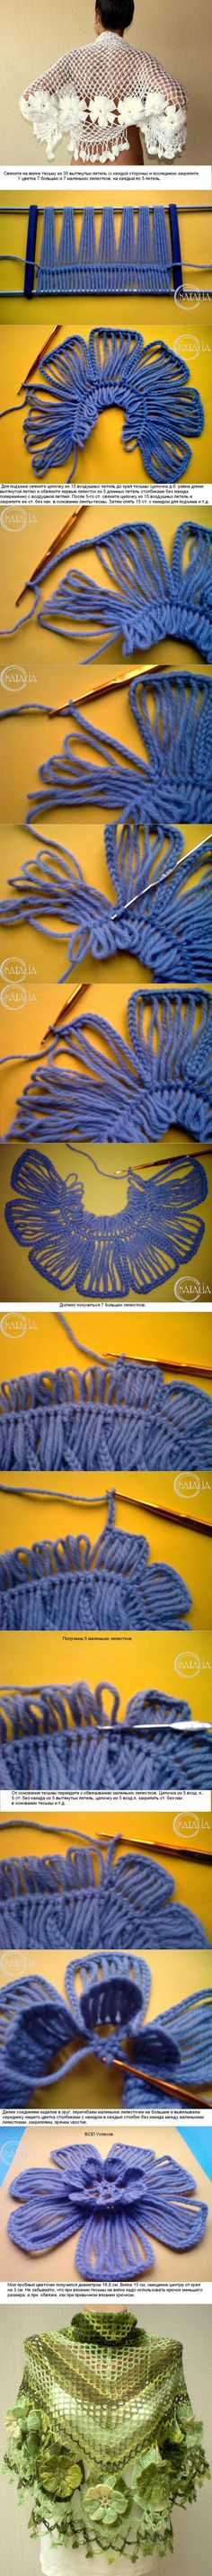 #Crochet #Flower #Tutorial - So beautiful! This type of flower makes a big splash and takes less time to do than you might imagine :)